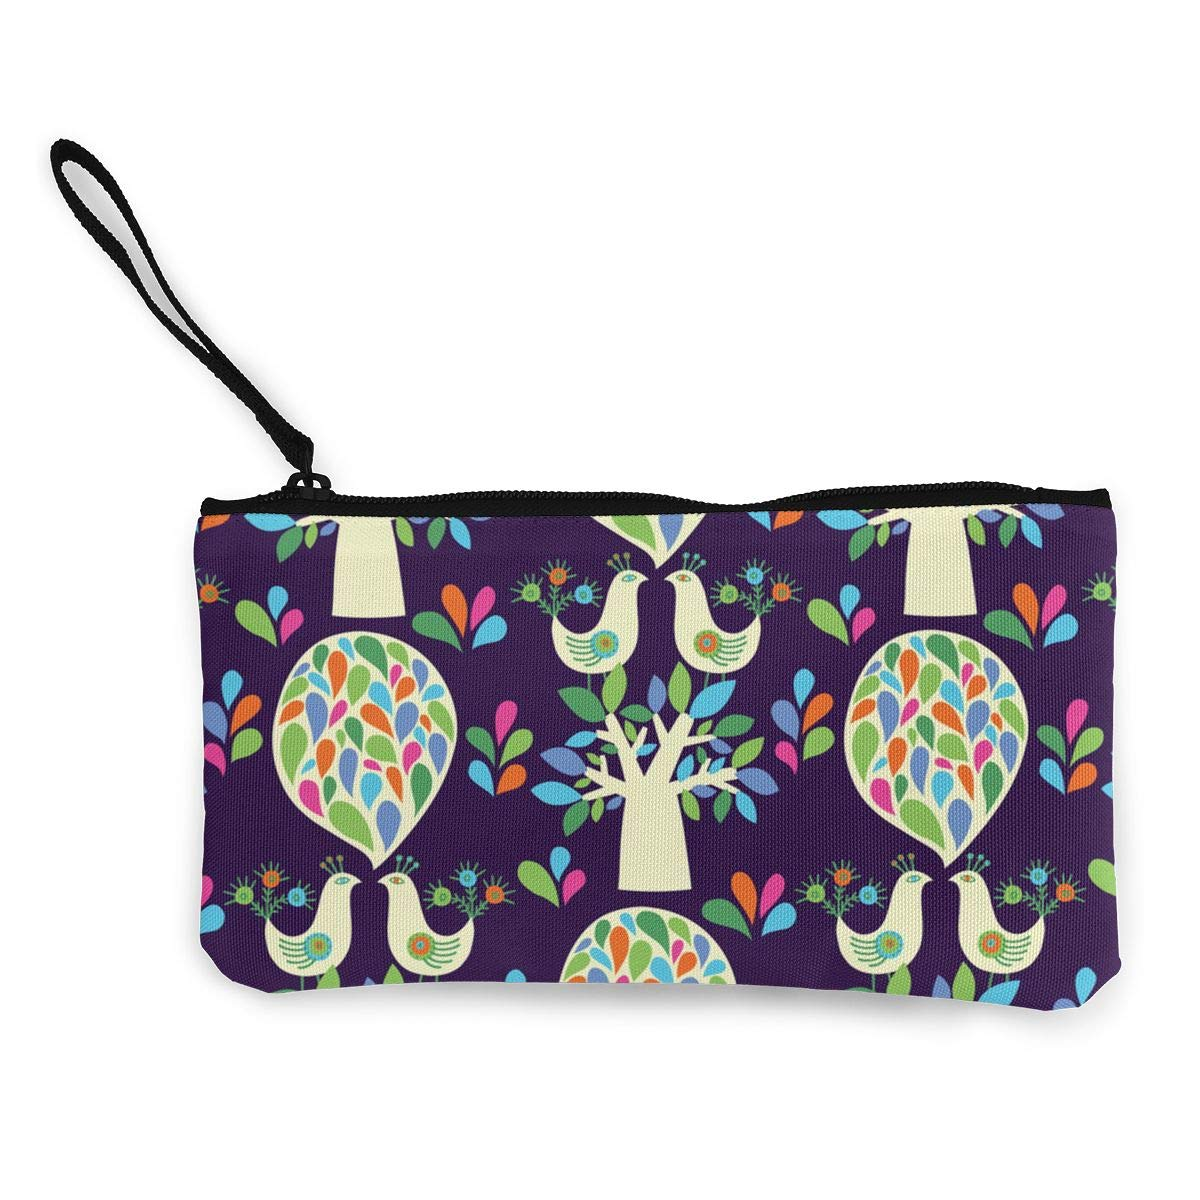 Trees And Birds Pattern Canvas Coin Purse Small Cute Wallet Bag With Zip